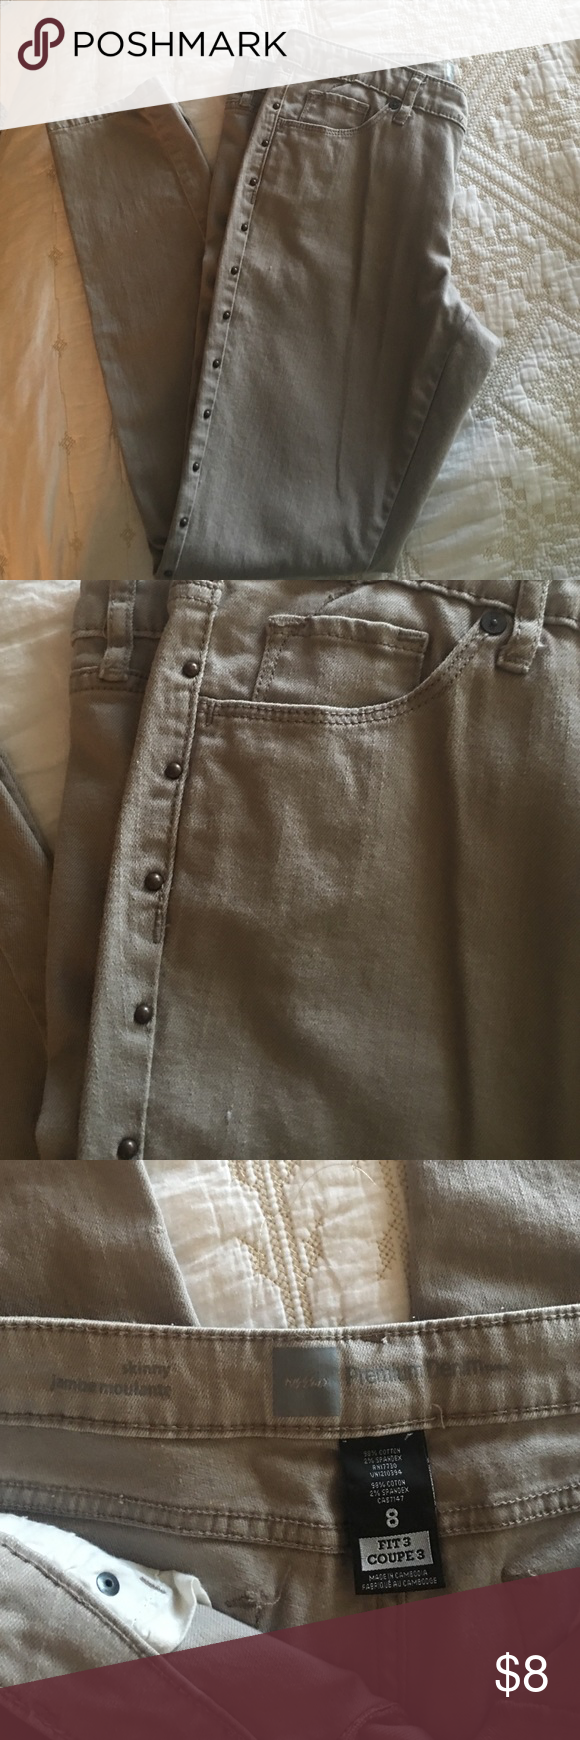 Skinny Mossino Supply co jeans size 8 Skinny Mossino Supply Co. Jeans size 8.  Brass studs along legs. Camel/tan color. Great condition Mossimo Supply Co. Jeans Skinny